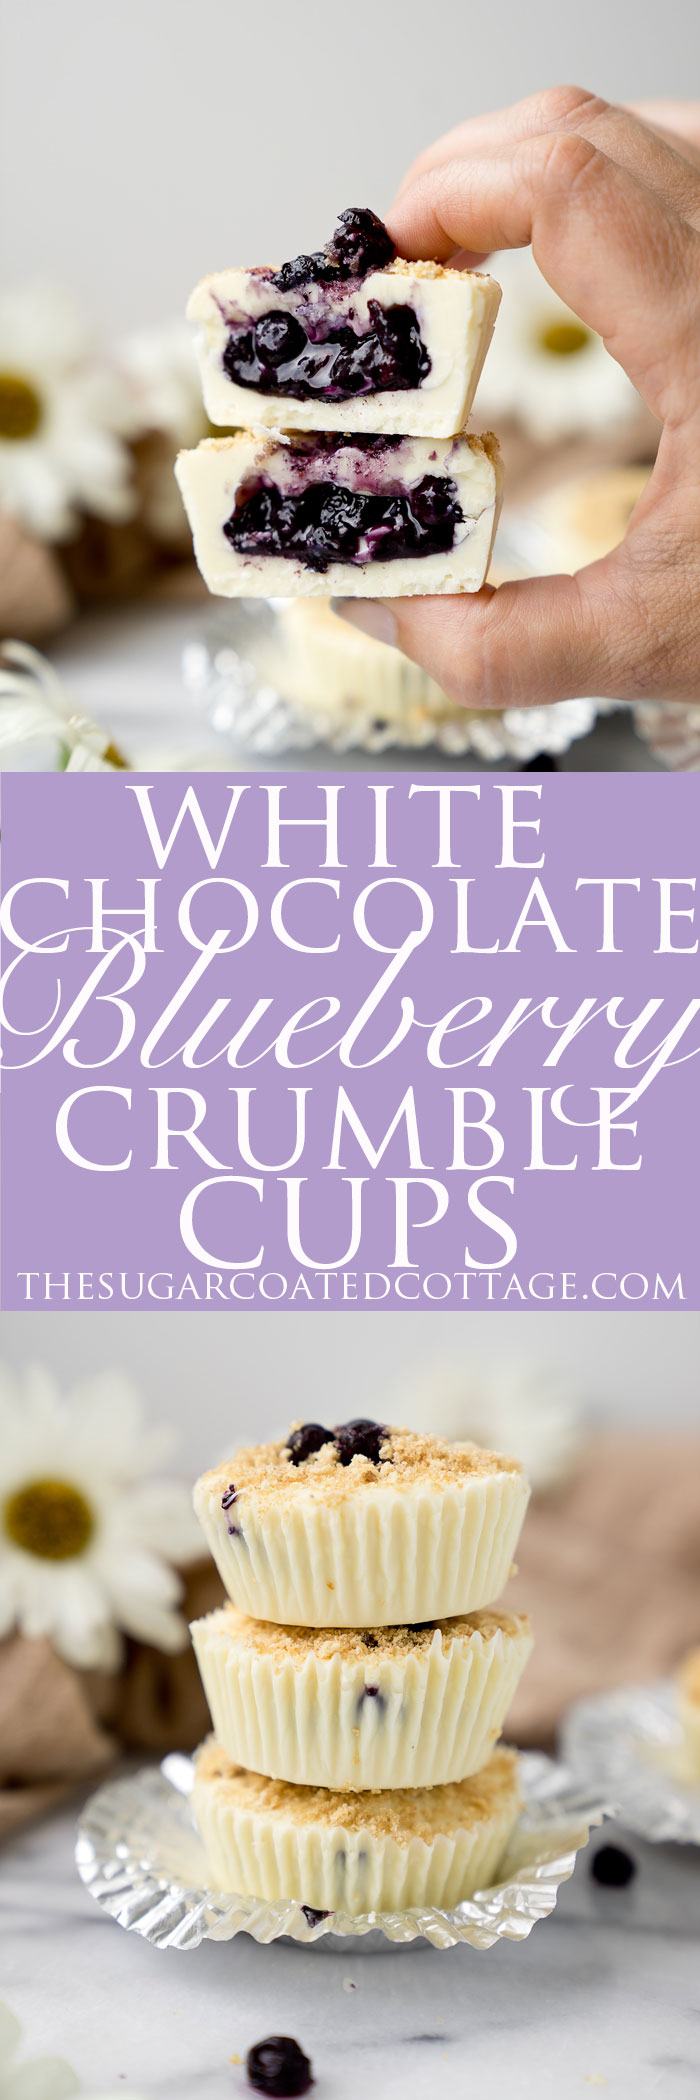 White Chocolate Blueberry Crumble Cups. Loving this simple, no bake, classic blueberry crumble inside of a creamy white chocolate cup. New take on a summer classic. | thesugarcoatedcottage.com